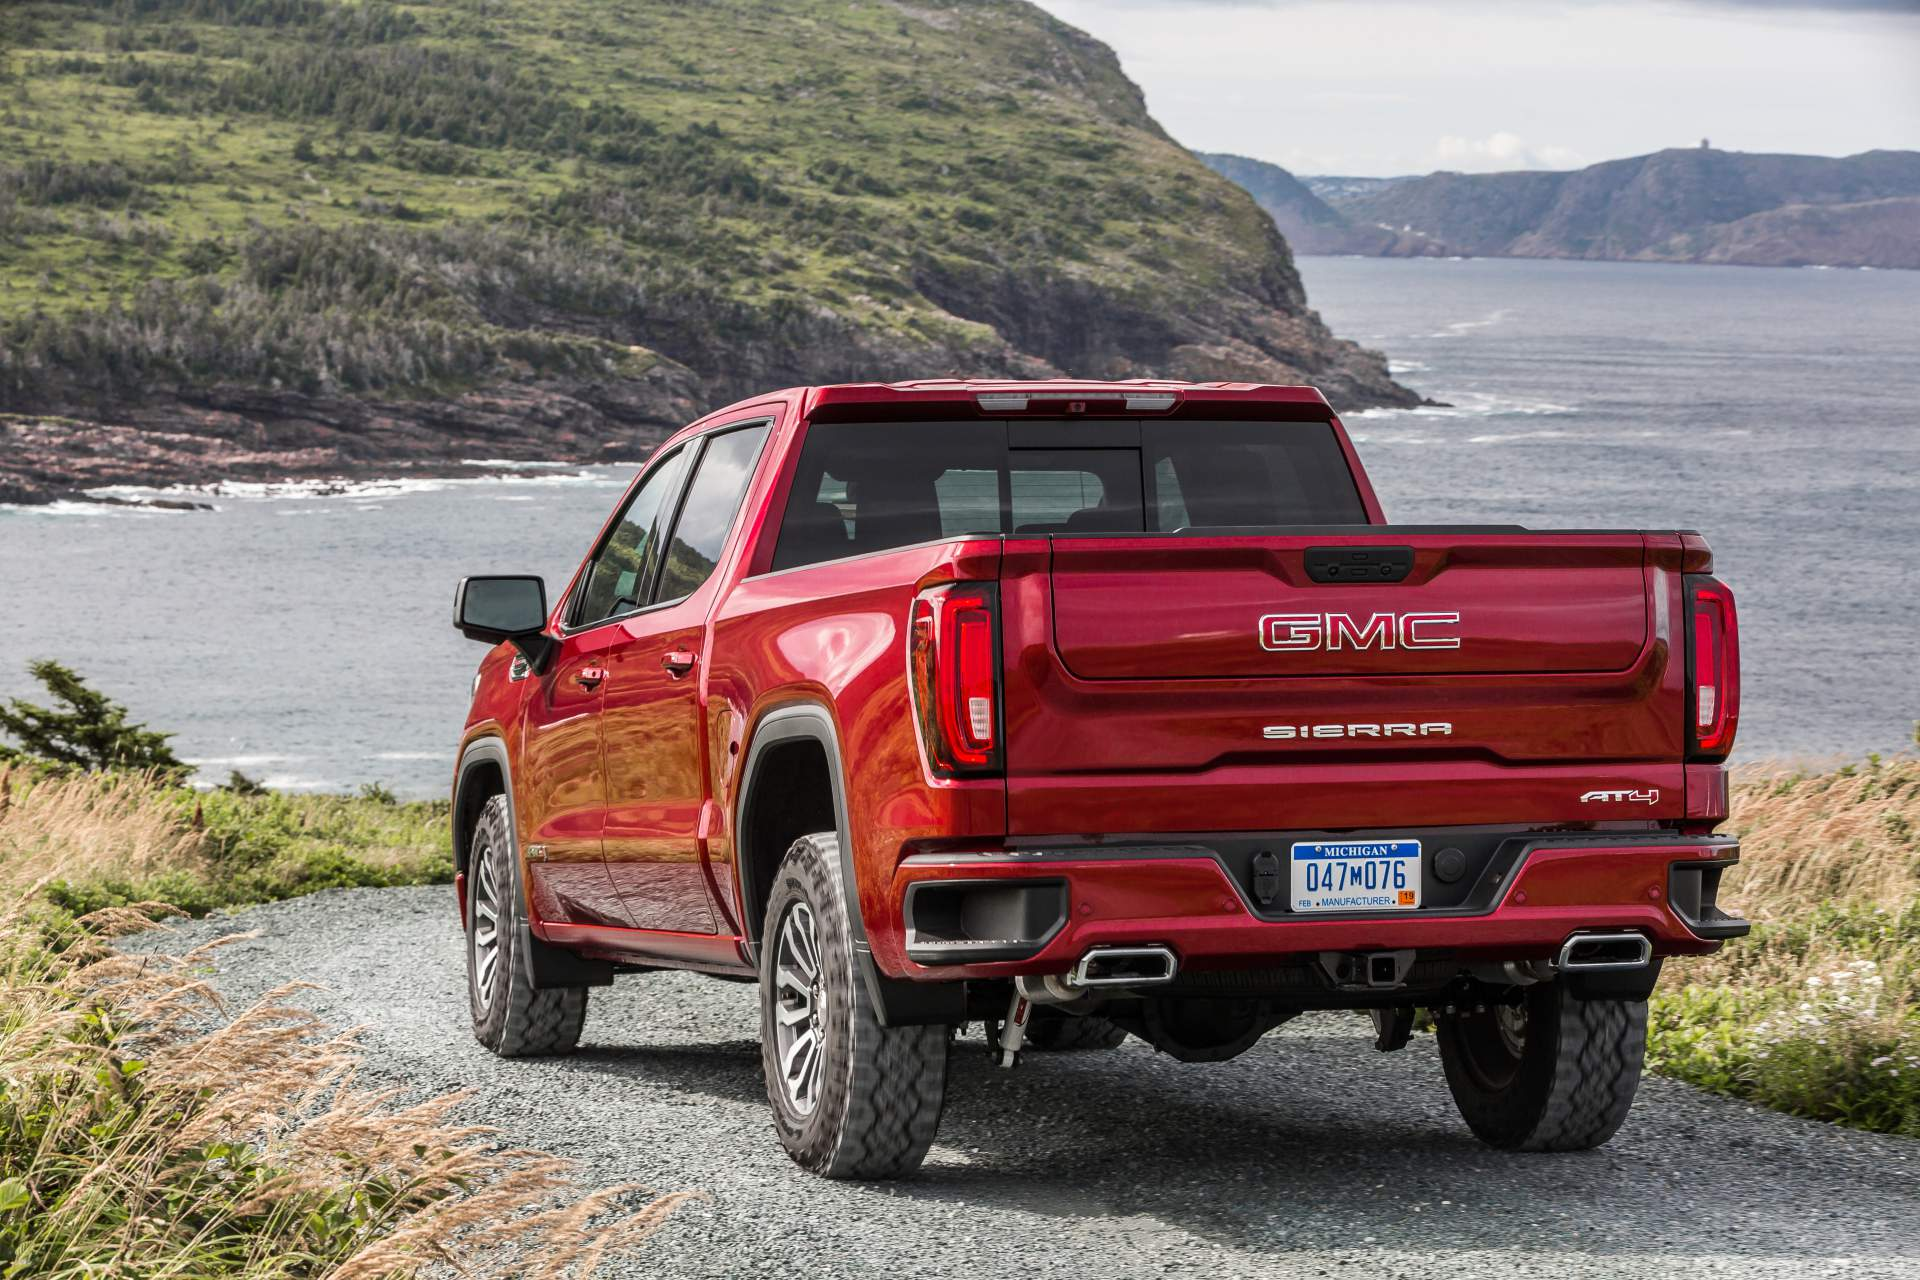 gmc levels up 2019 sierra at4 with offroad performance